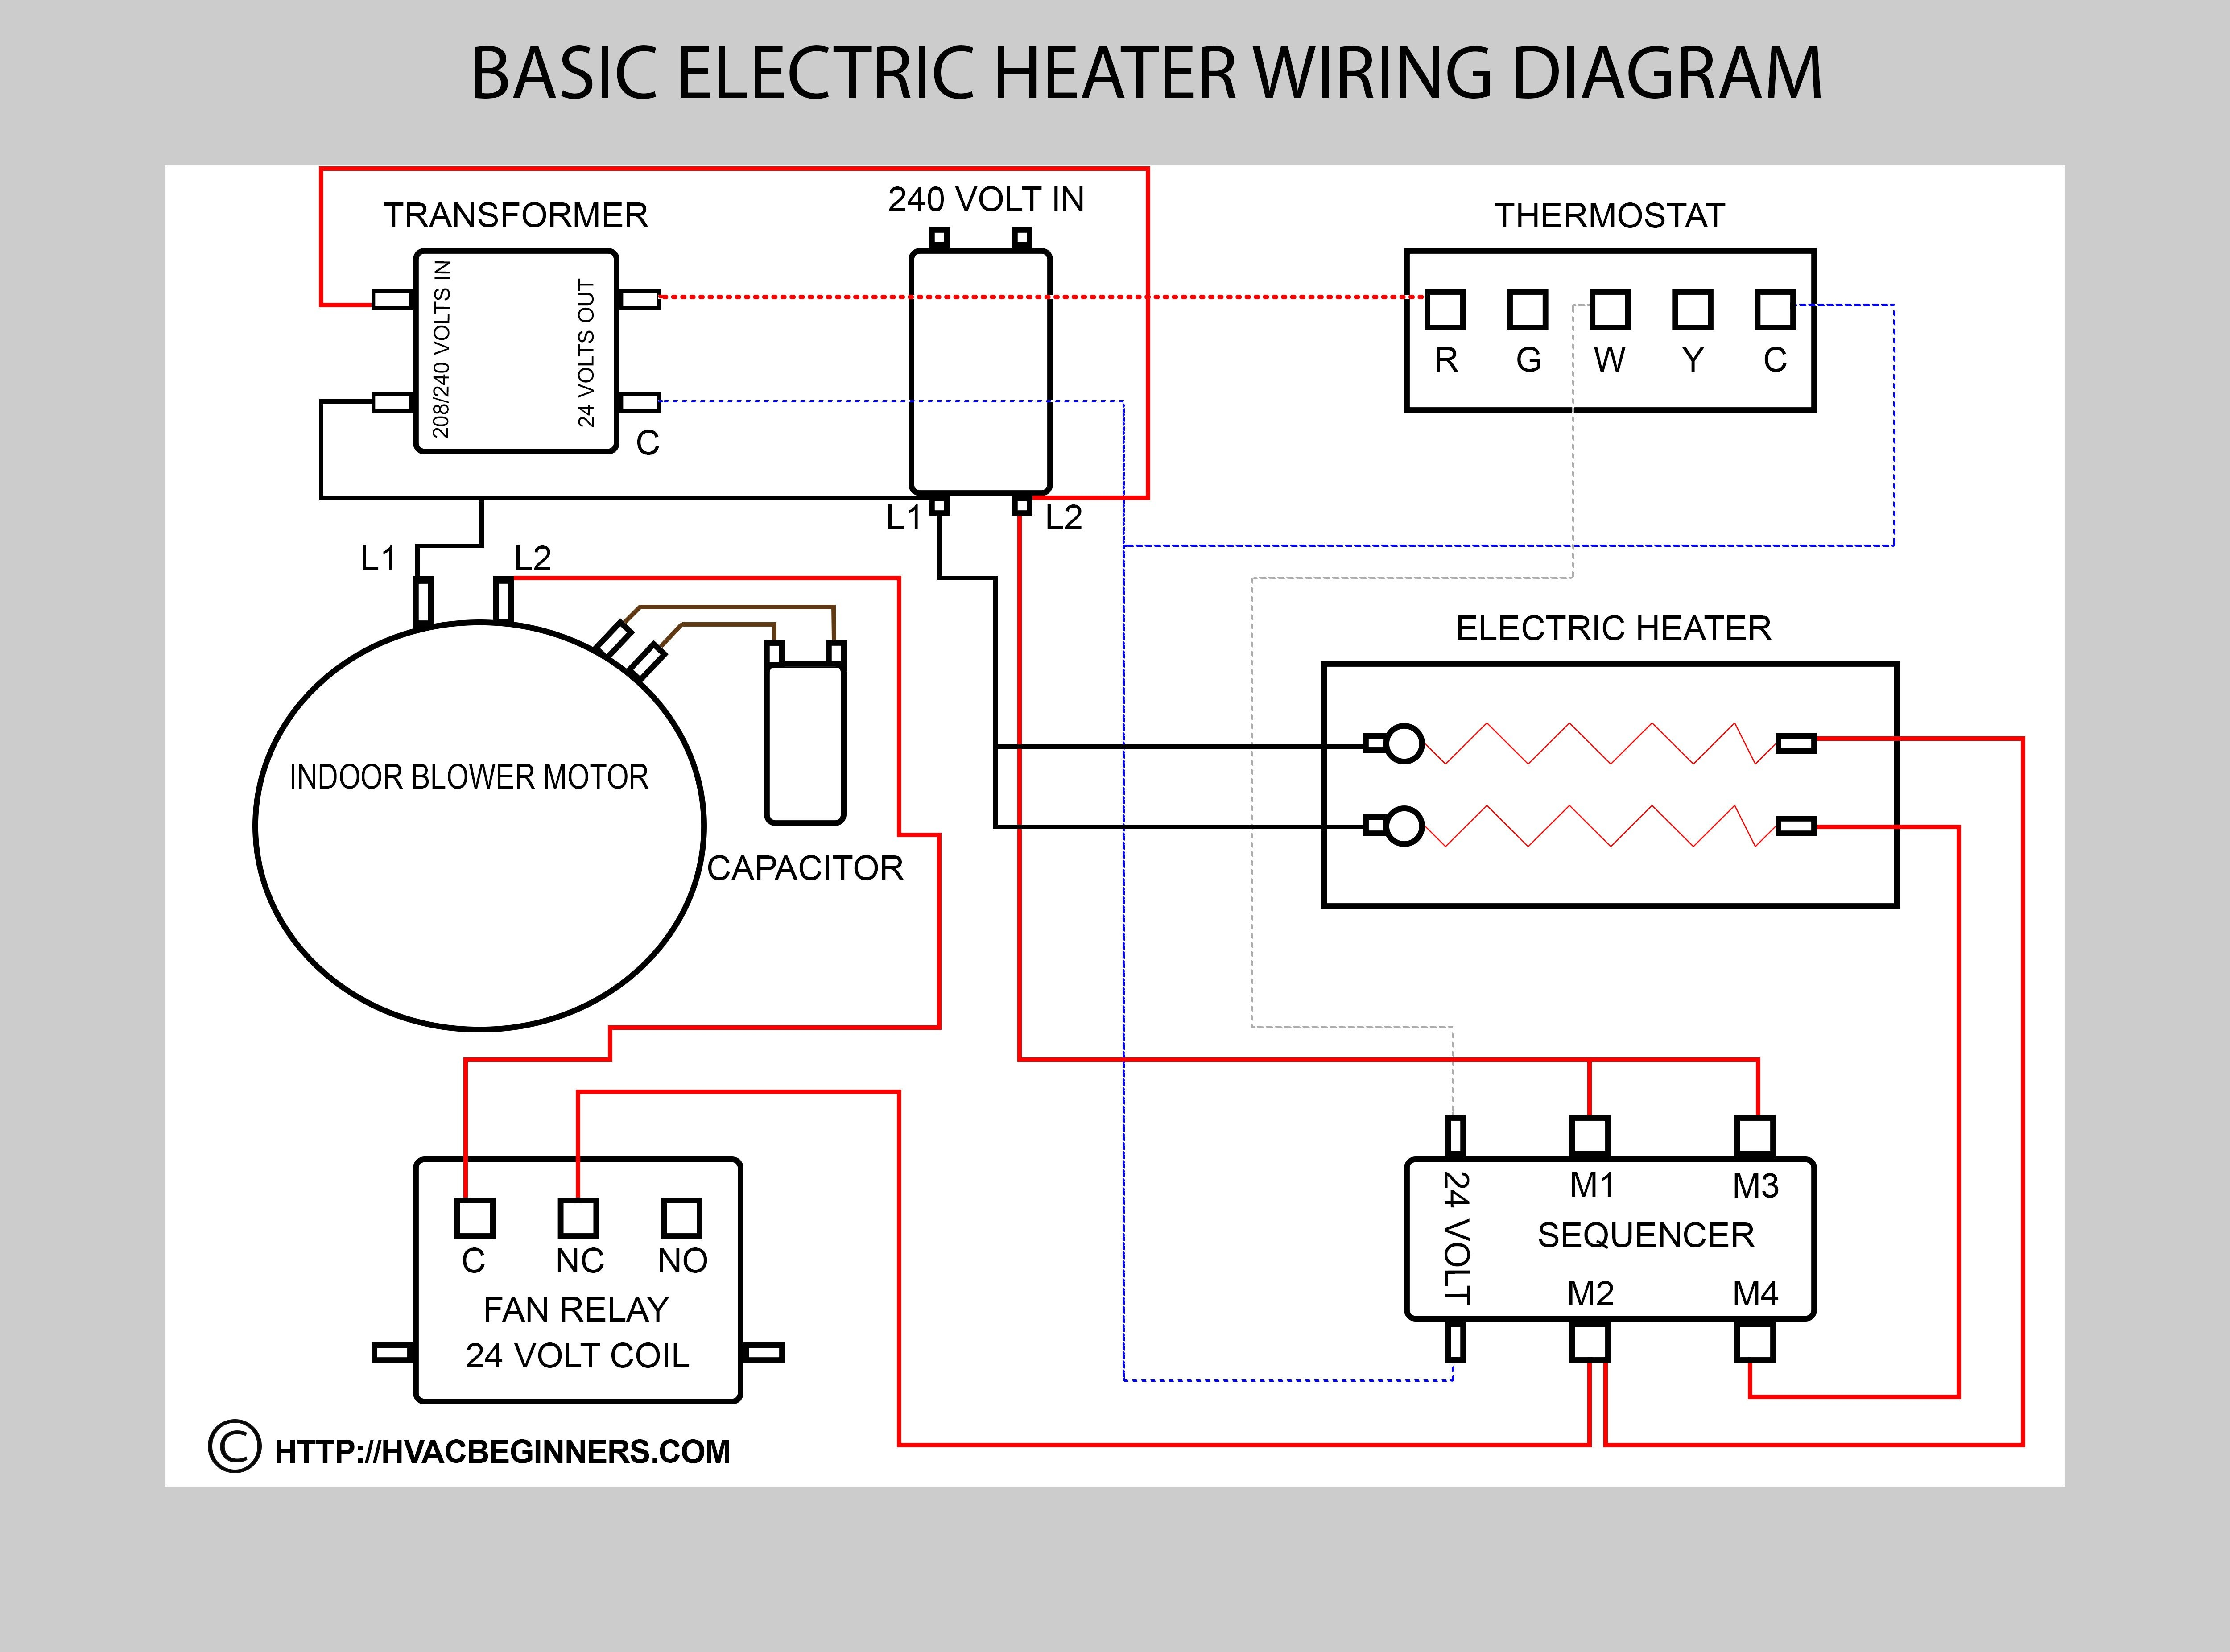 Split system air conditioner wiring diagram hvac wire central and relay futuristic visualize pressor parts